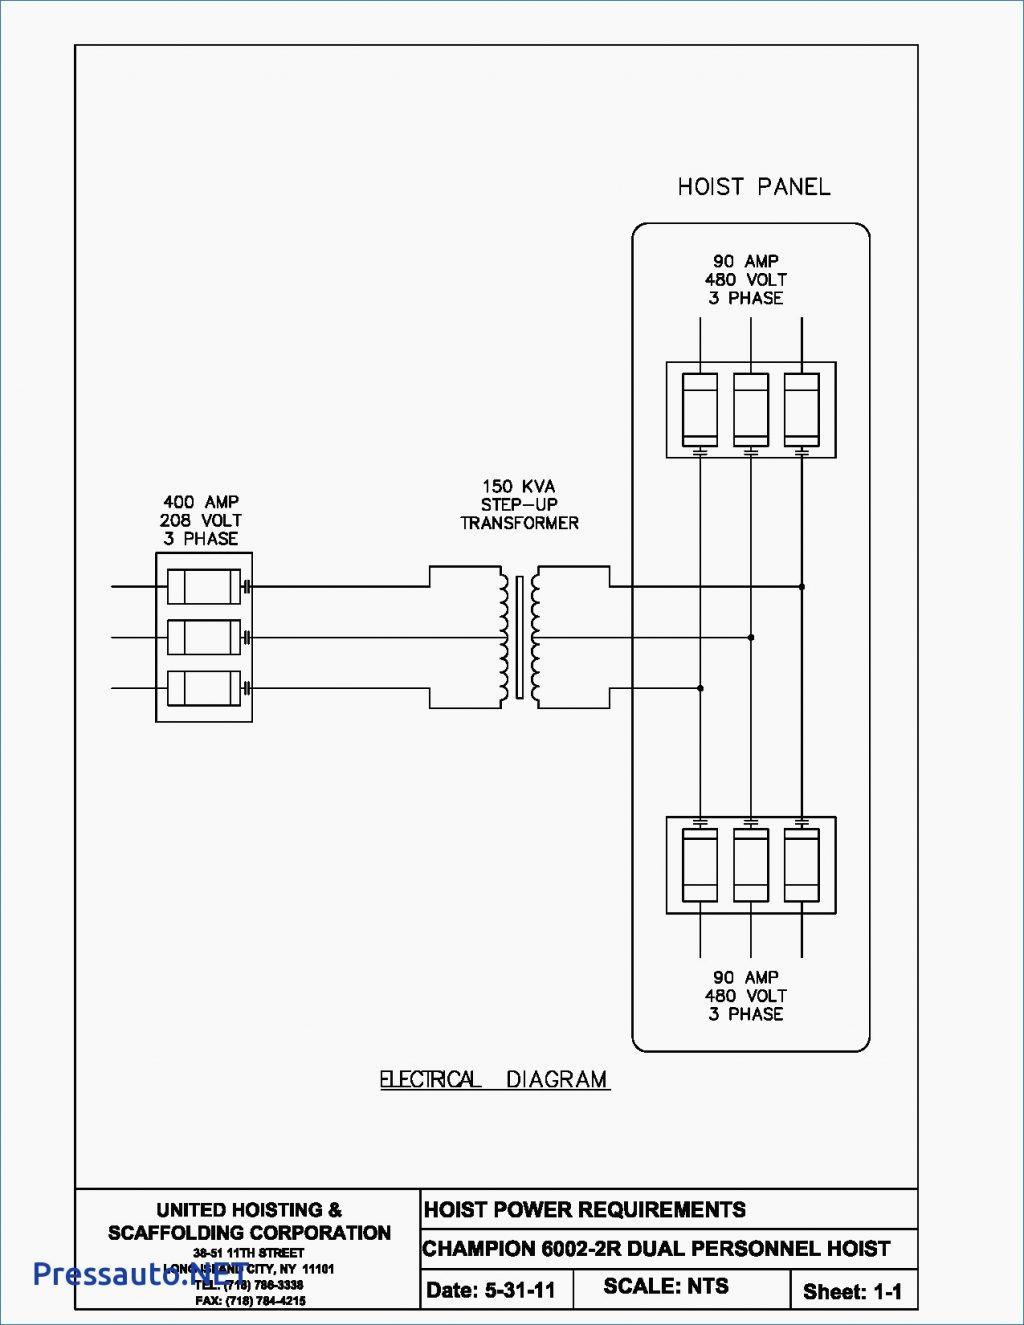 belimo lmb24 3 t wiring diagram Collection-Belimo Lmb24 3 T Wiring Diagram Fresh A4ld Wiring Diagram Free Download C5 Corvette Underhood Fuse 13-c